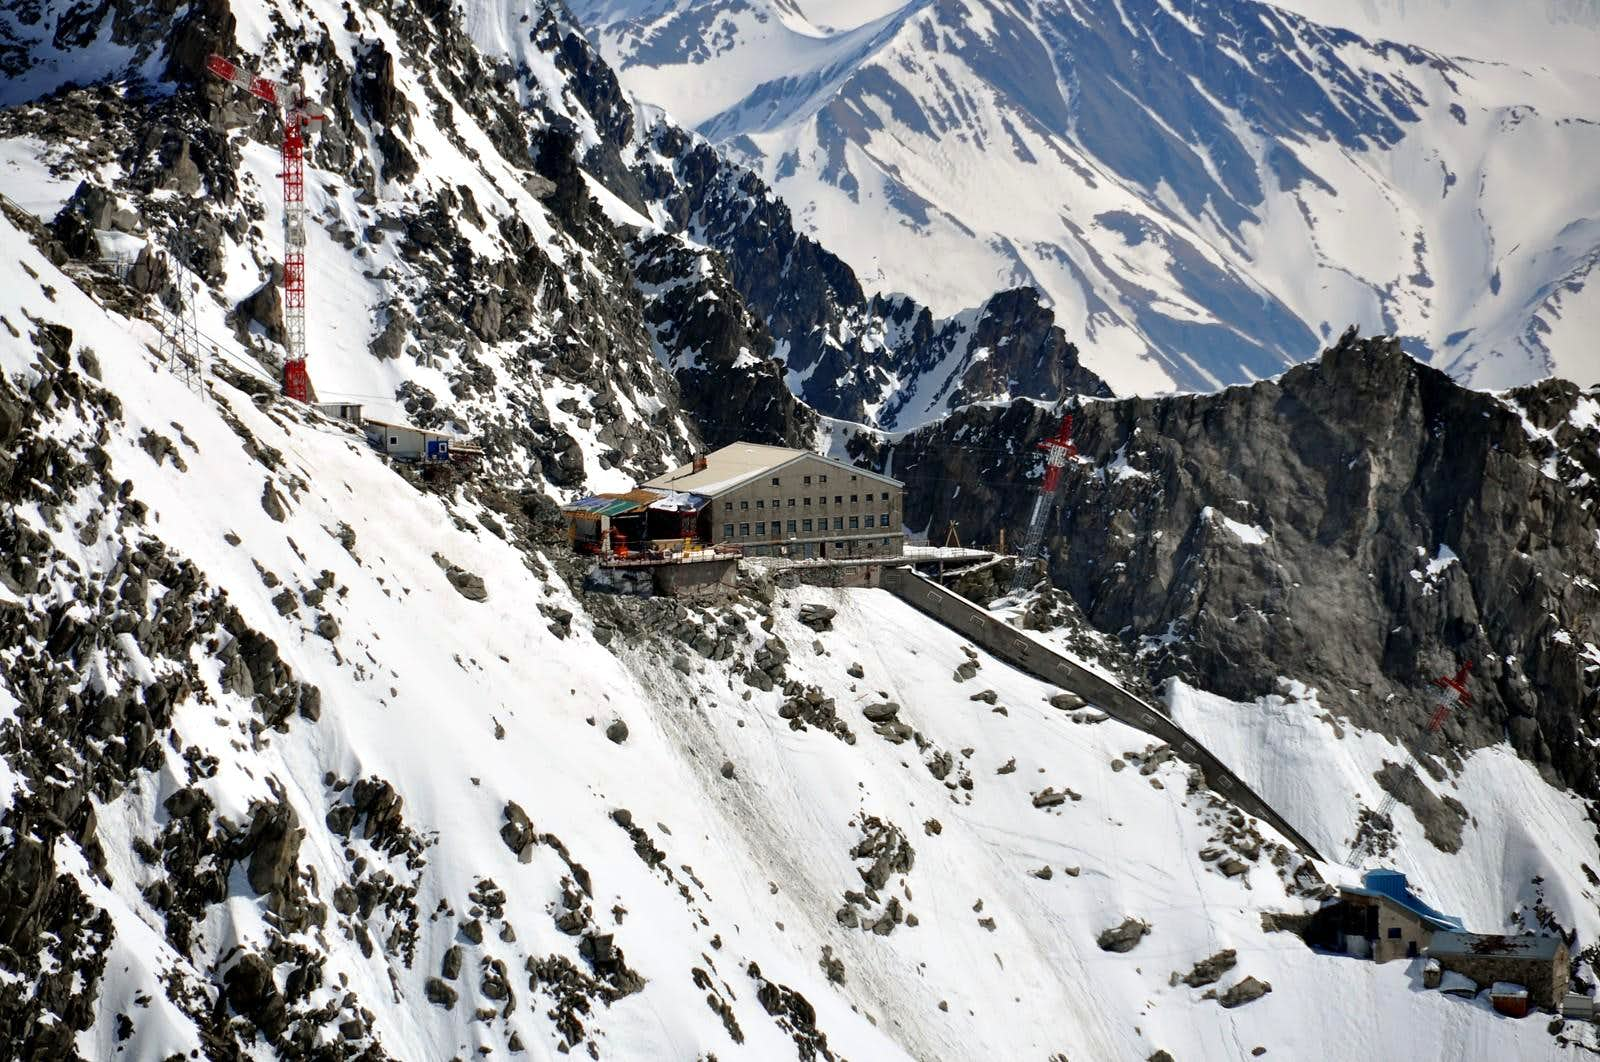 <font color=ff7000>⌂</font>Alpine REFUGES in the Aosta Valley &quot;Veny Valley&quot;